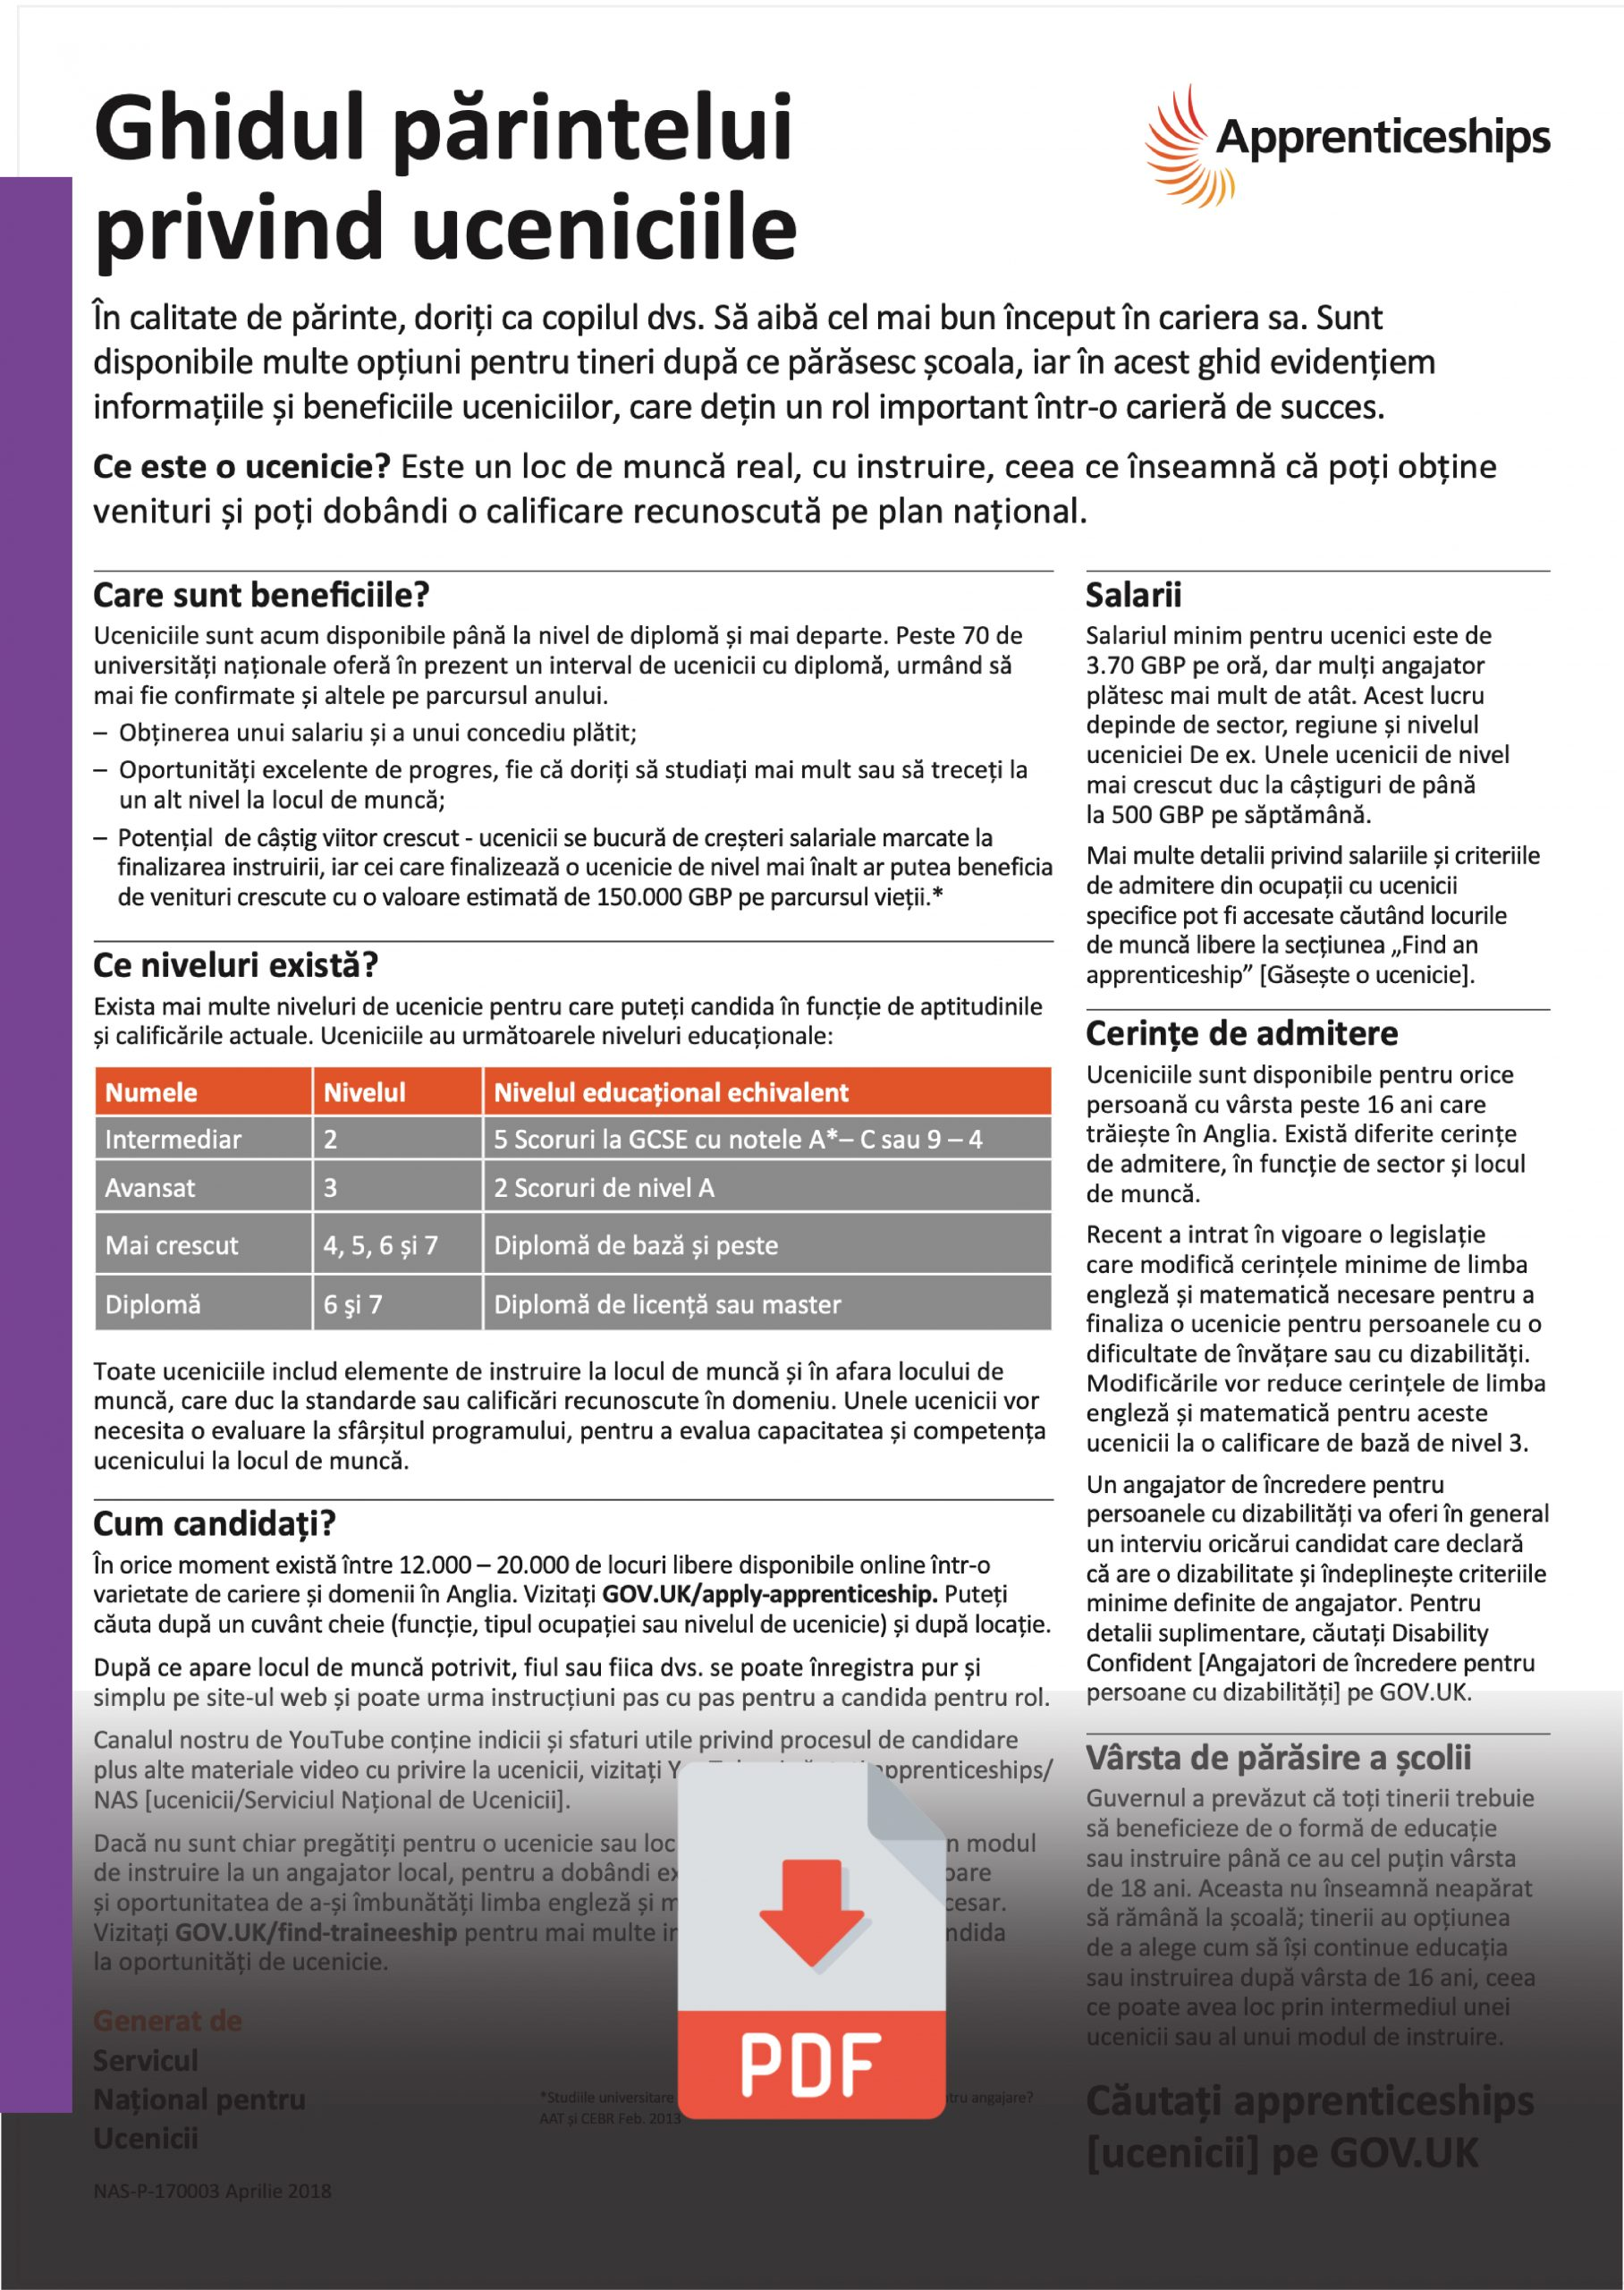 Romanian - Parents Guide to Apprenticeships